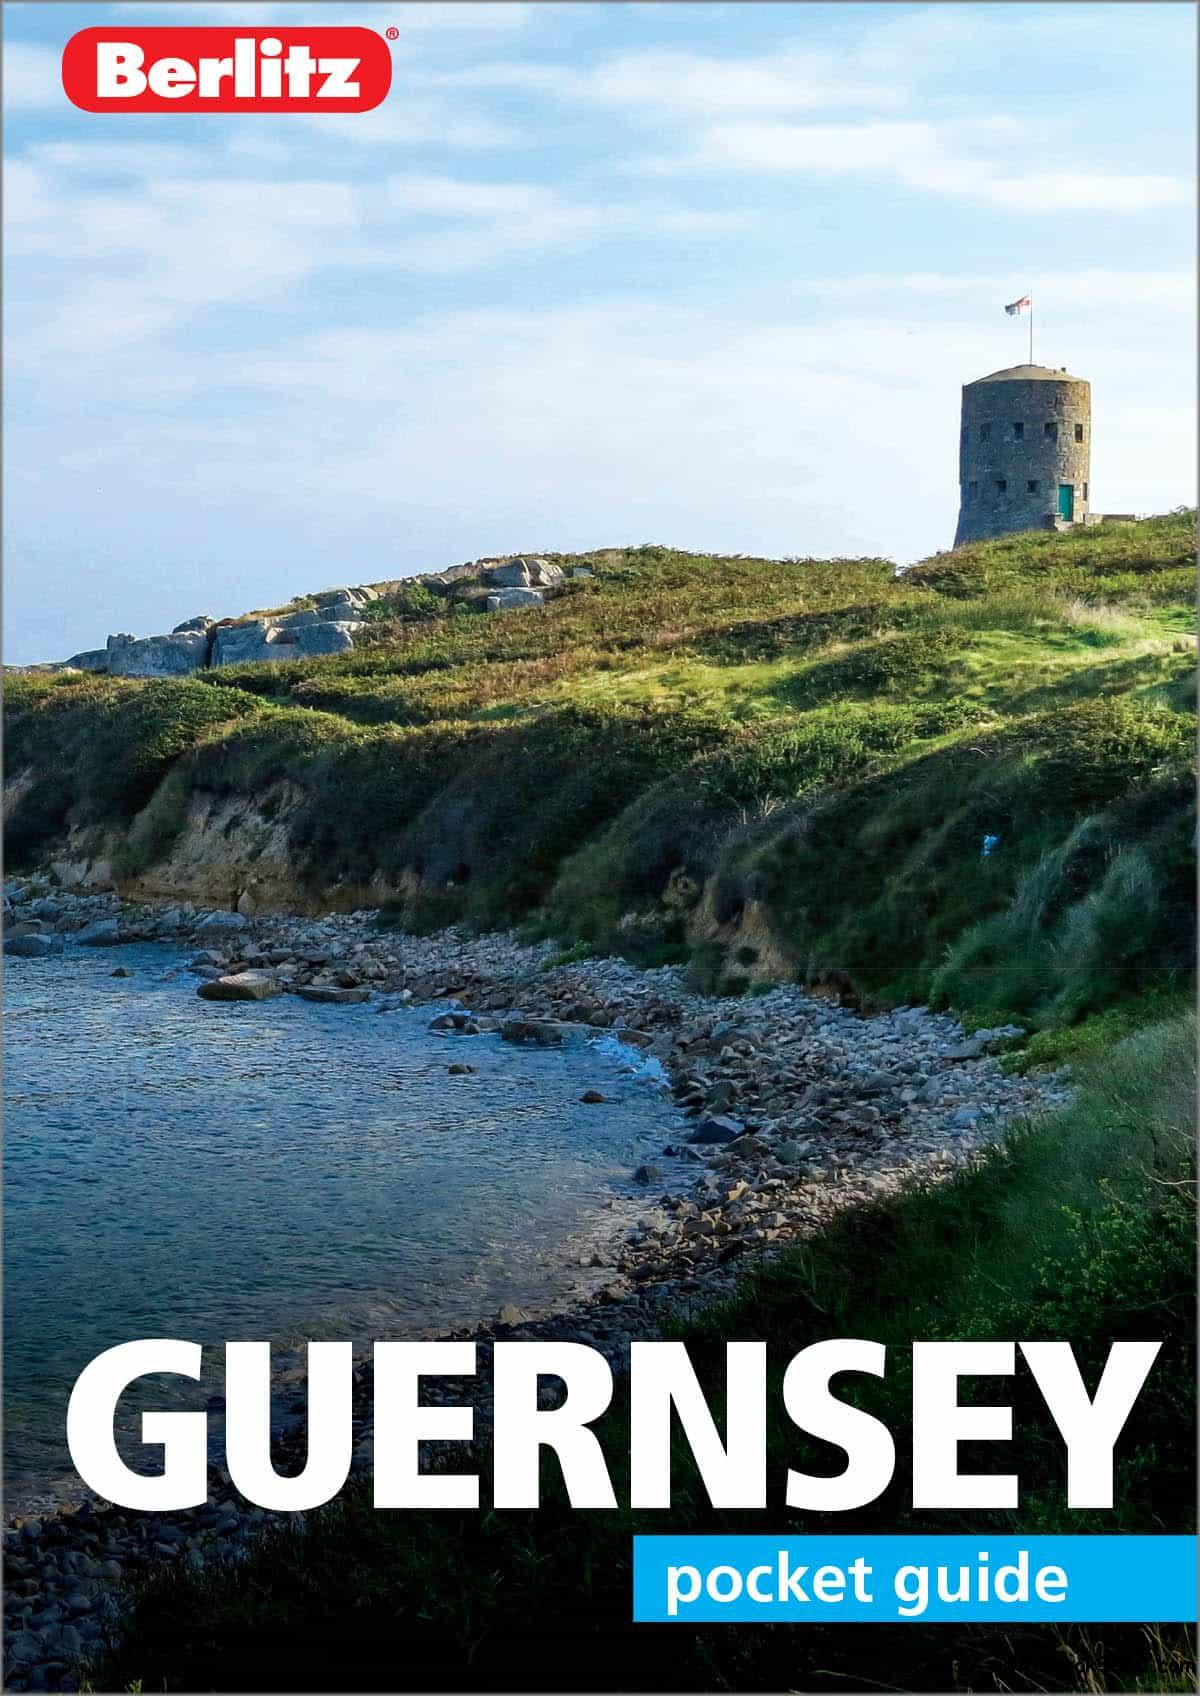 Berlitz Pocket Guide to Guernsey (Berlitz Pocket Guides), 2nd Edition